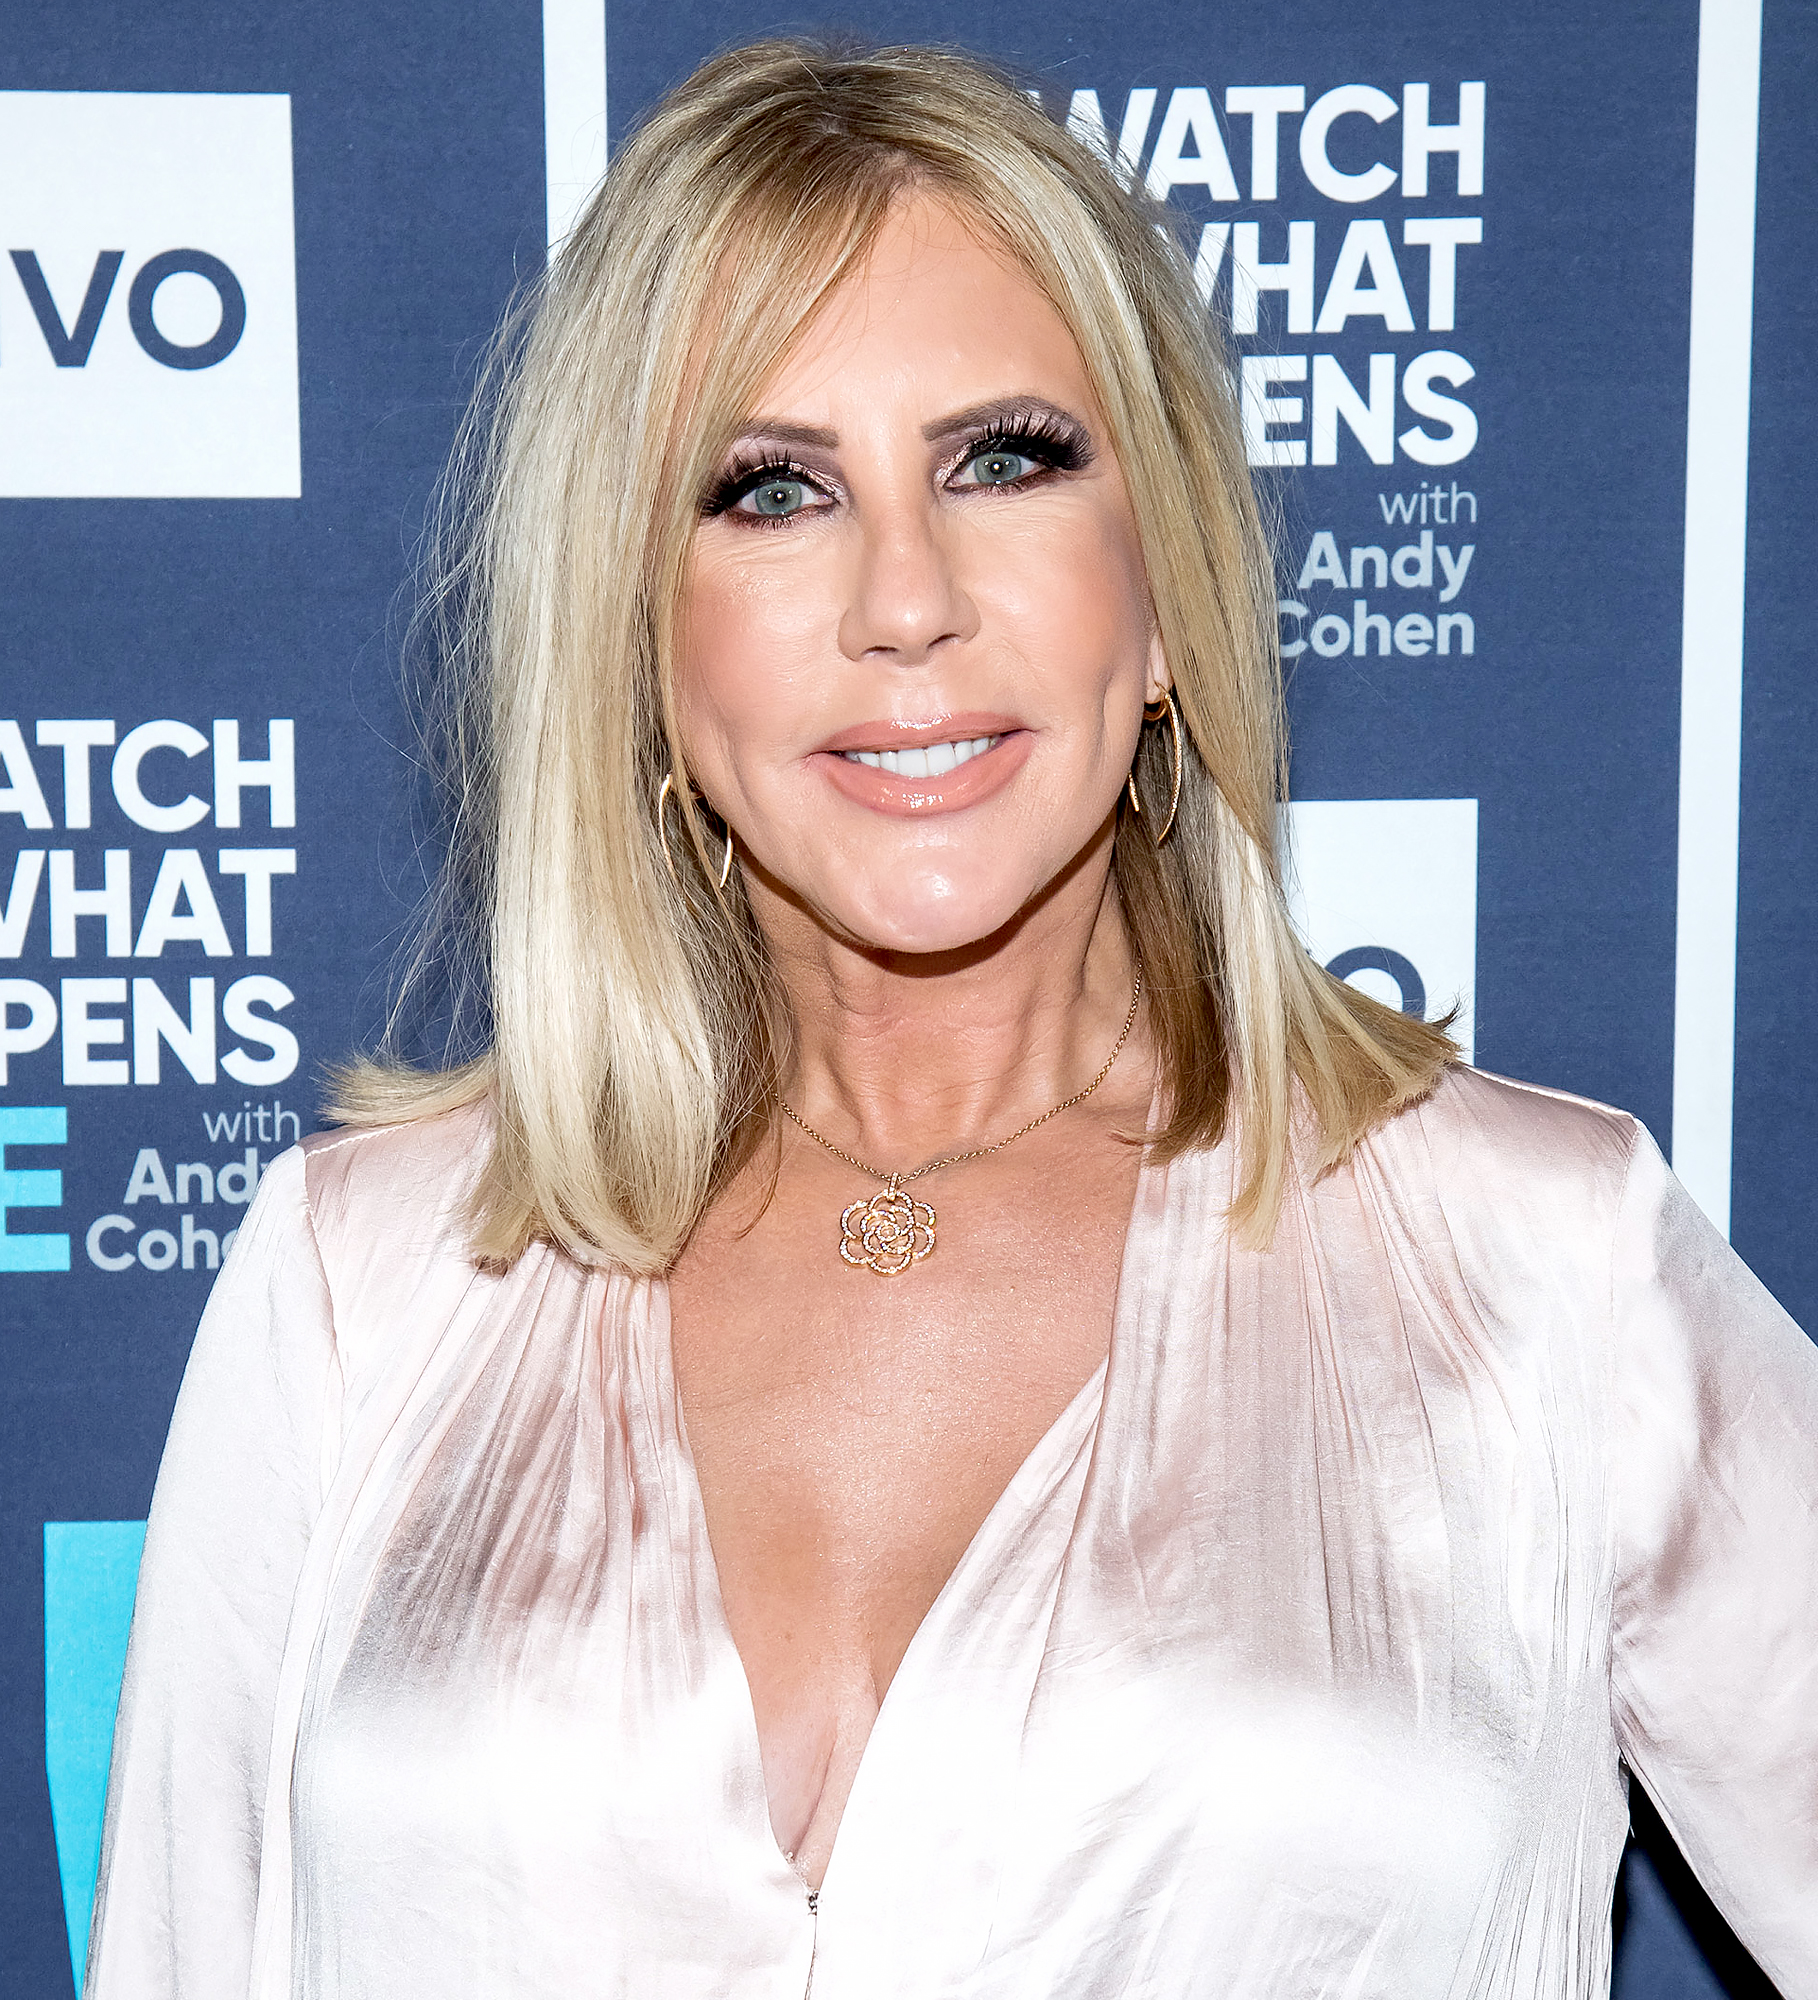 Vicki-Gunvalson-on-RHOC